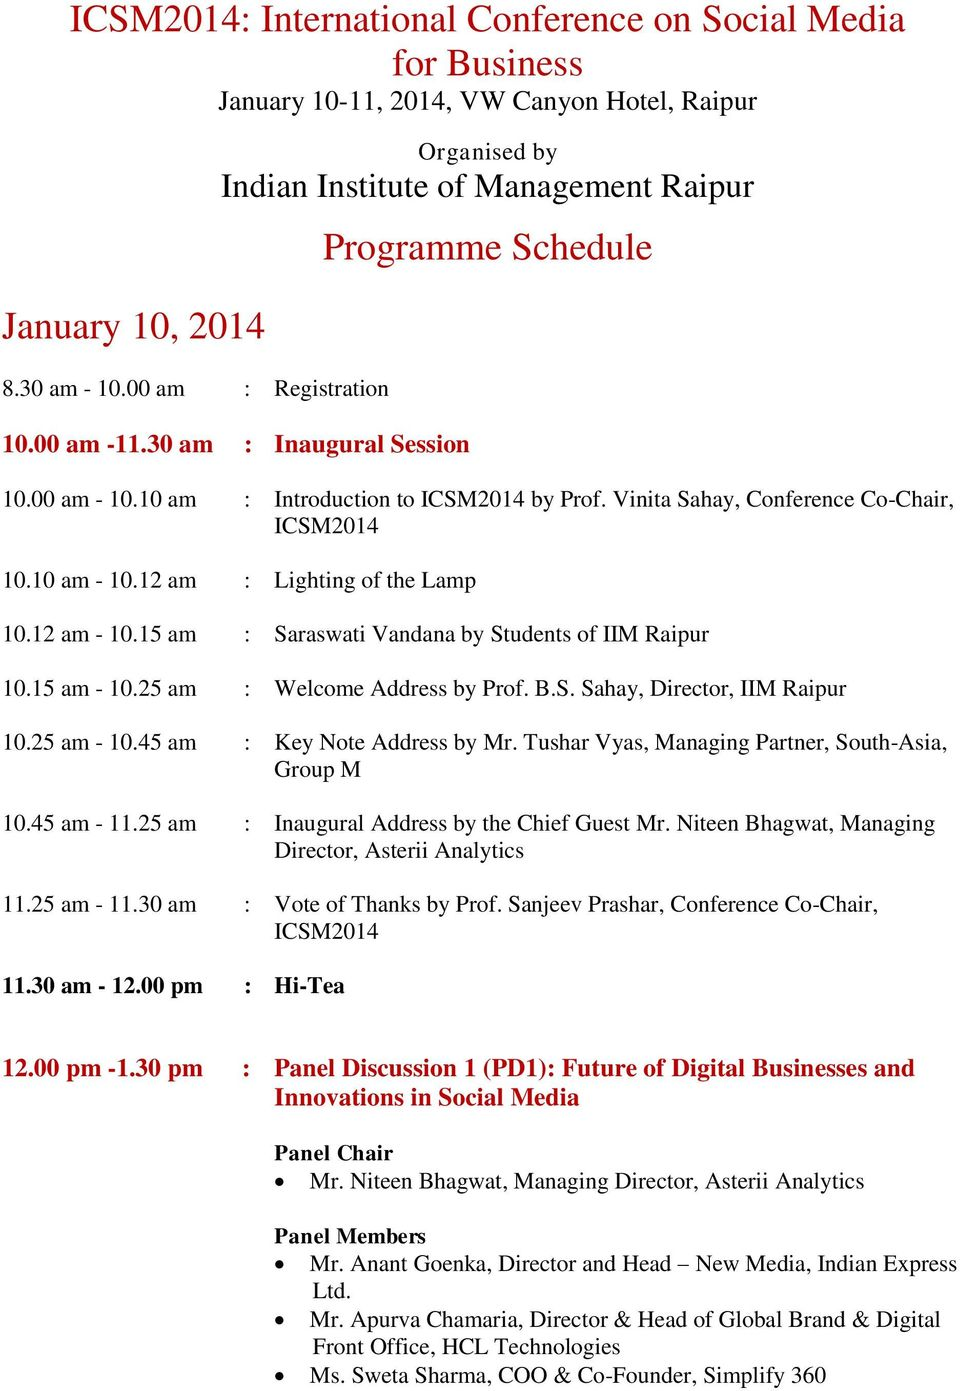 ICSM2014: International Conference on Social Media for Business ...